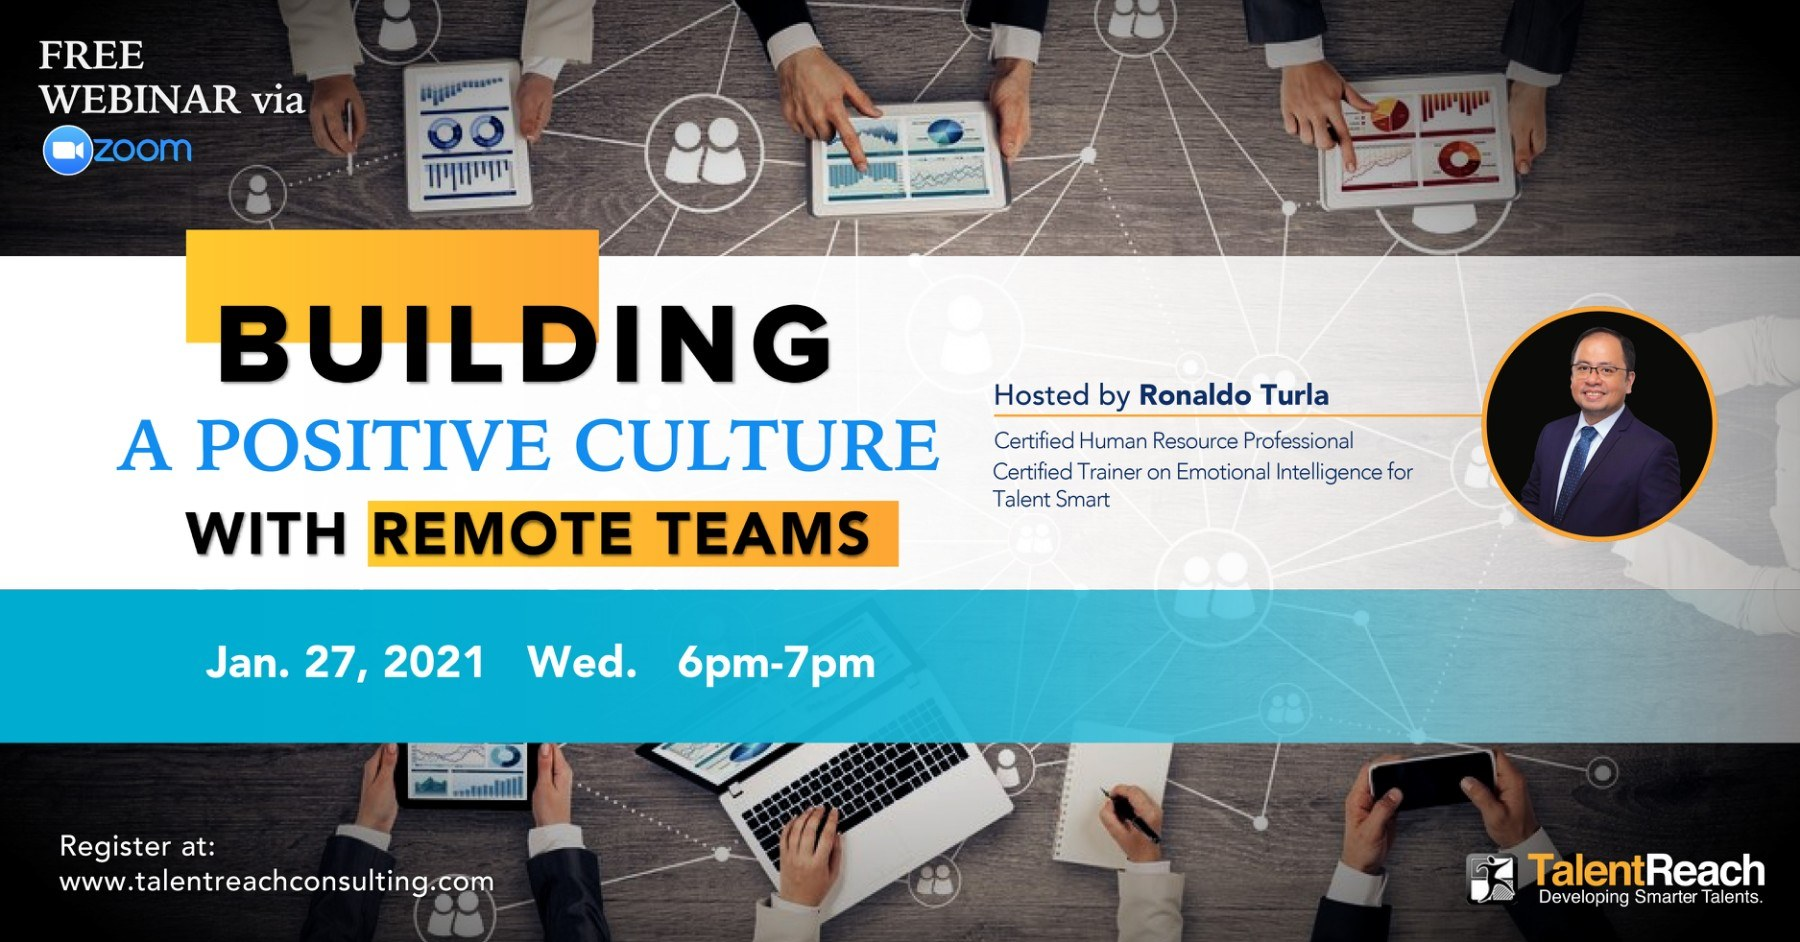 BUILDING A POSITIVE CULTURE WITH REMOTE TEAMS